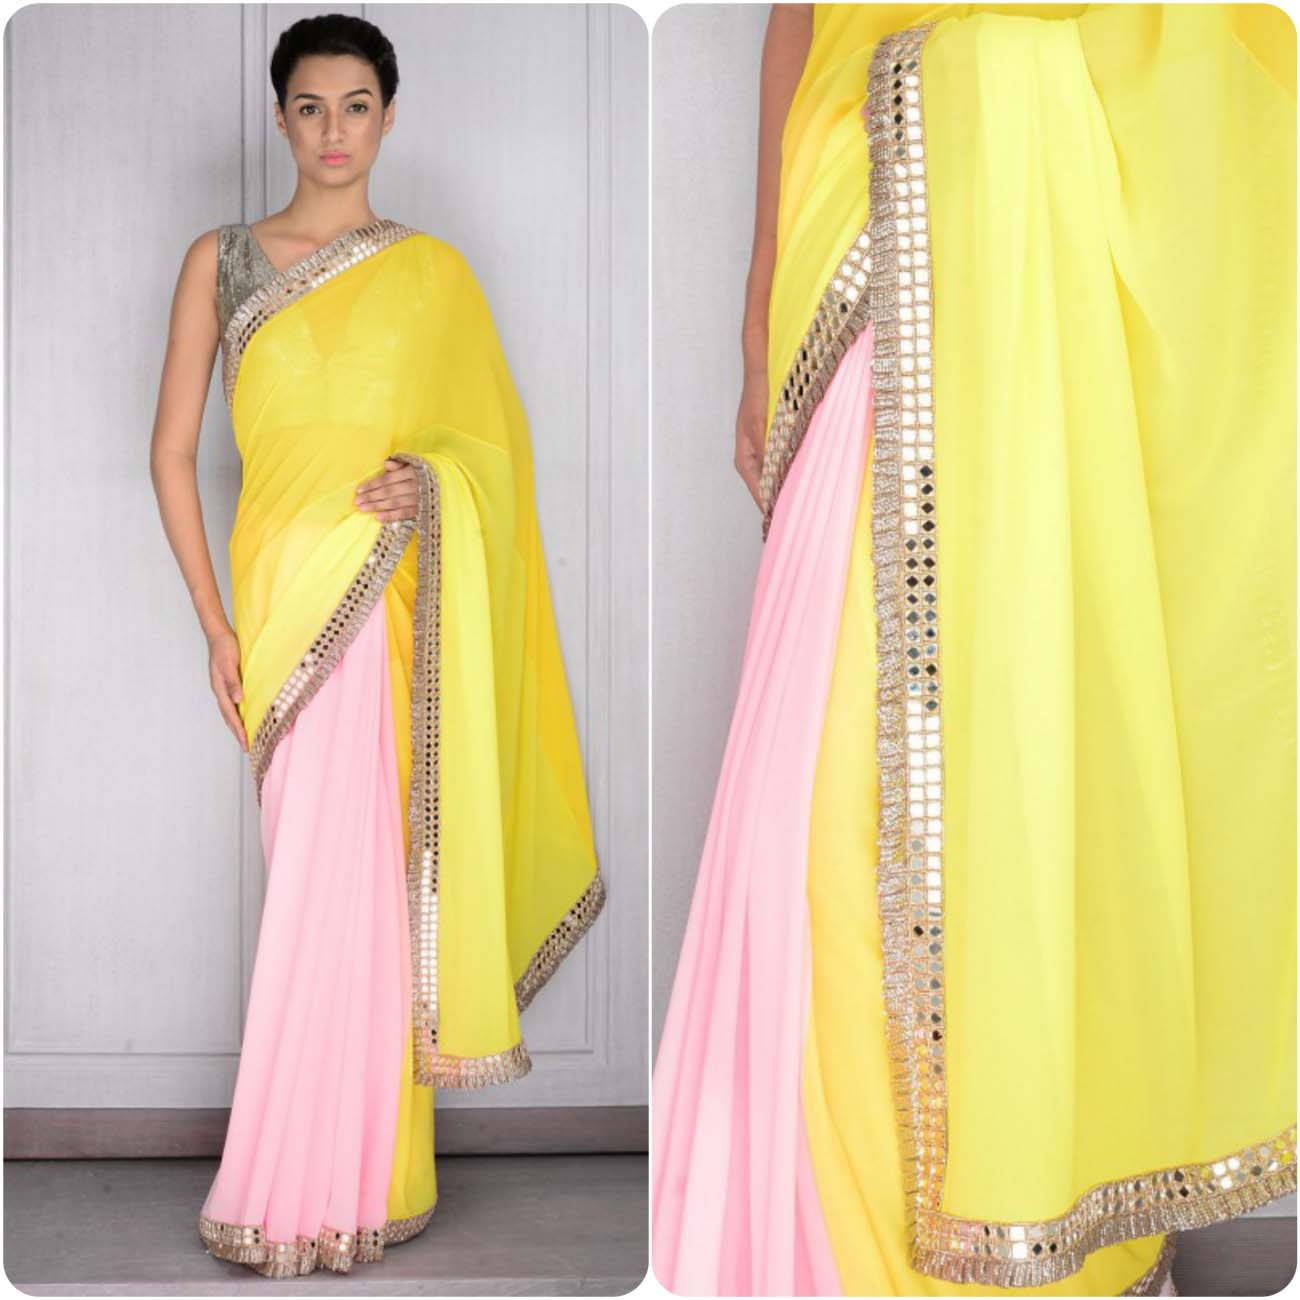 Latest Sarees Collection By Manish Malhotra Stylo Planet